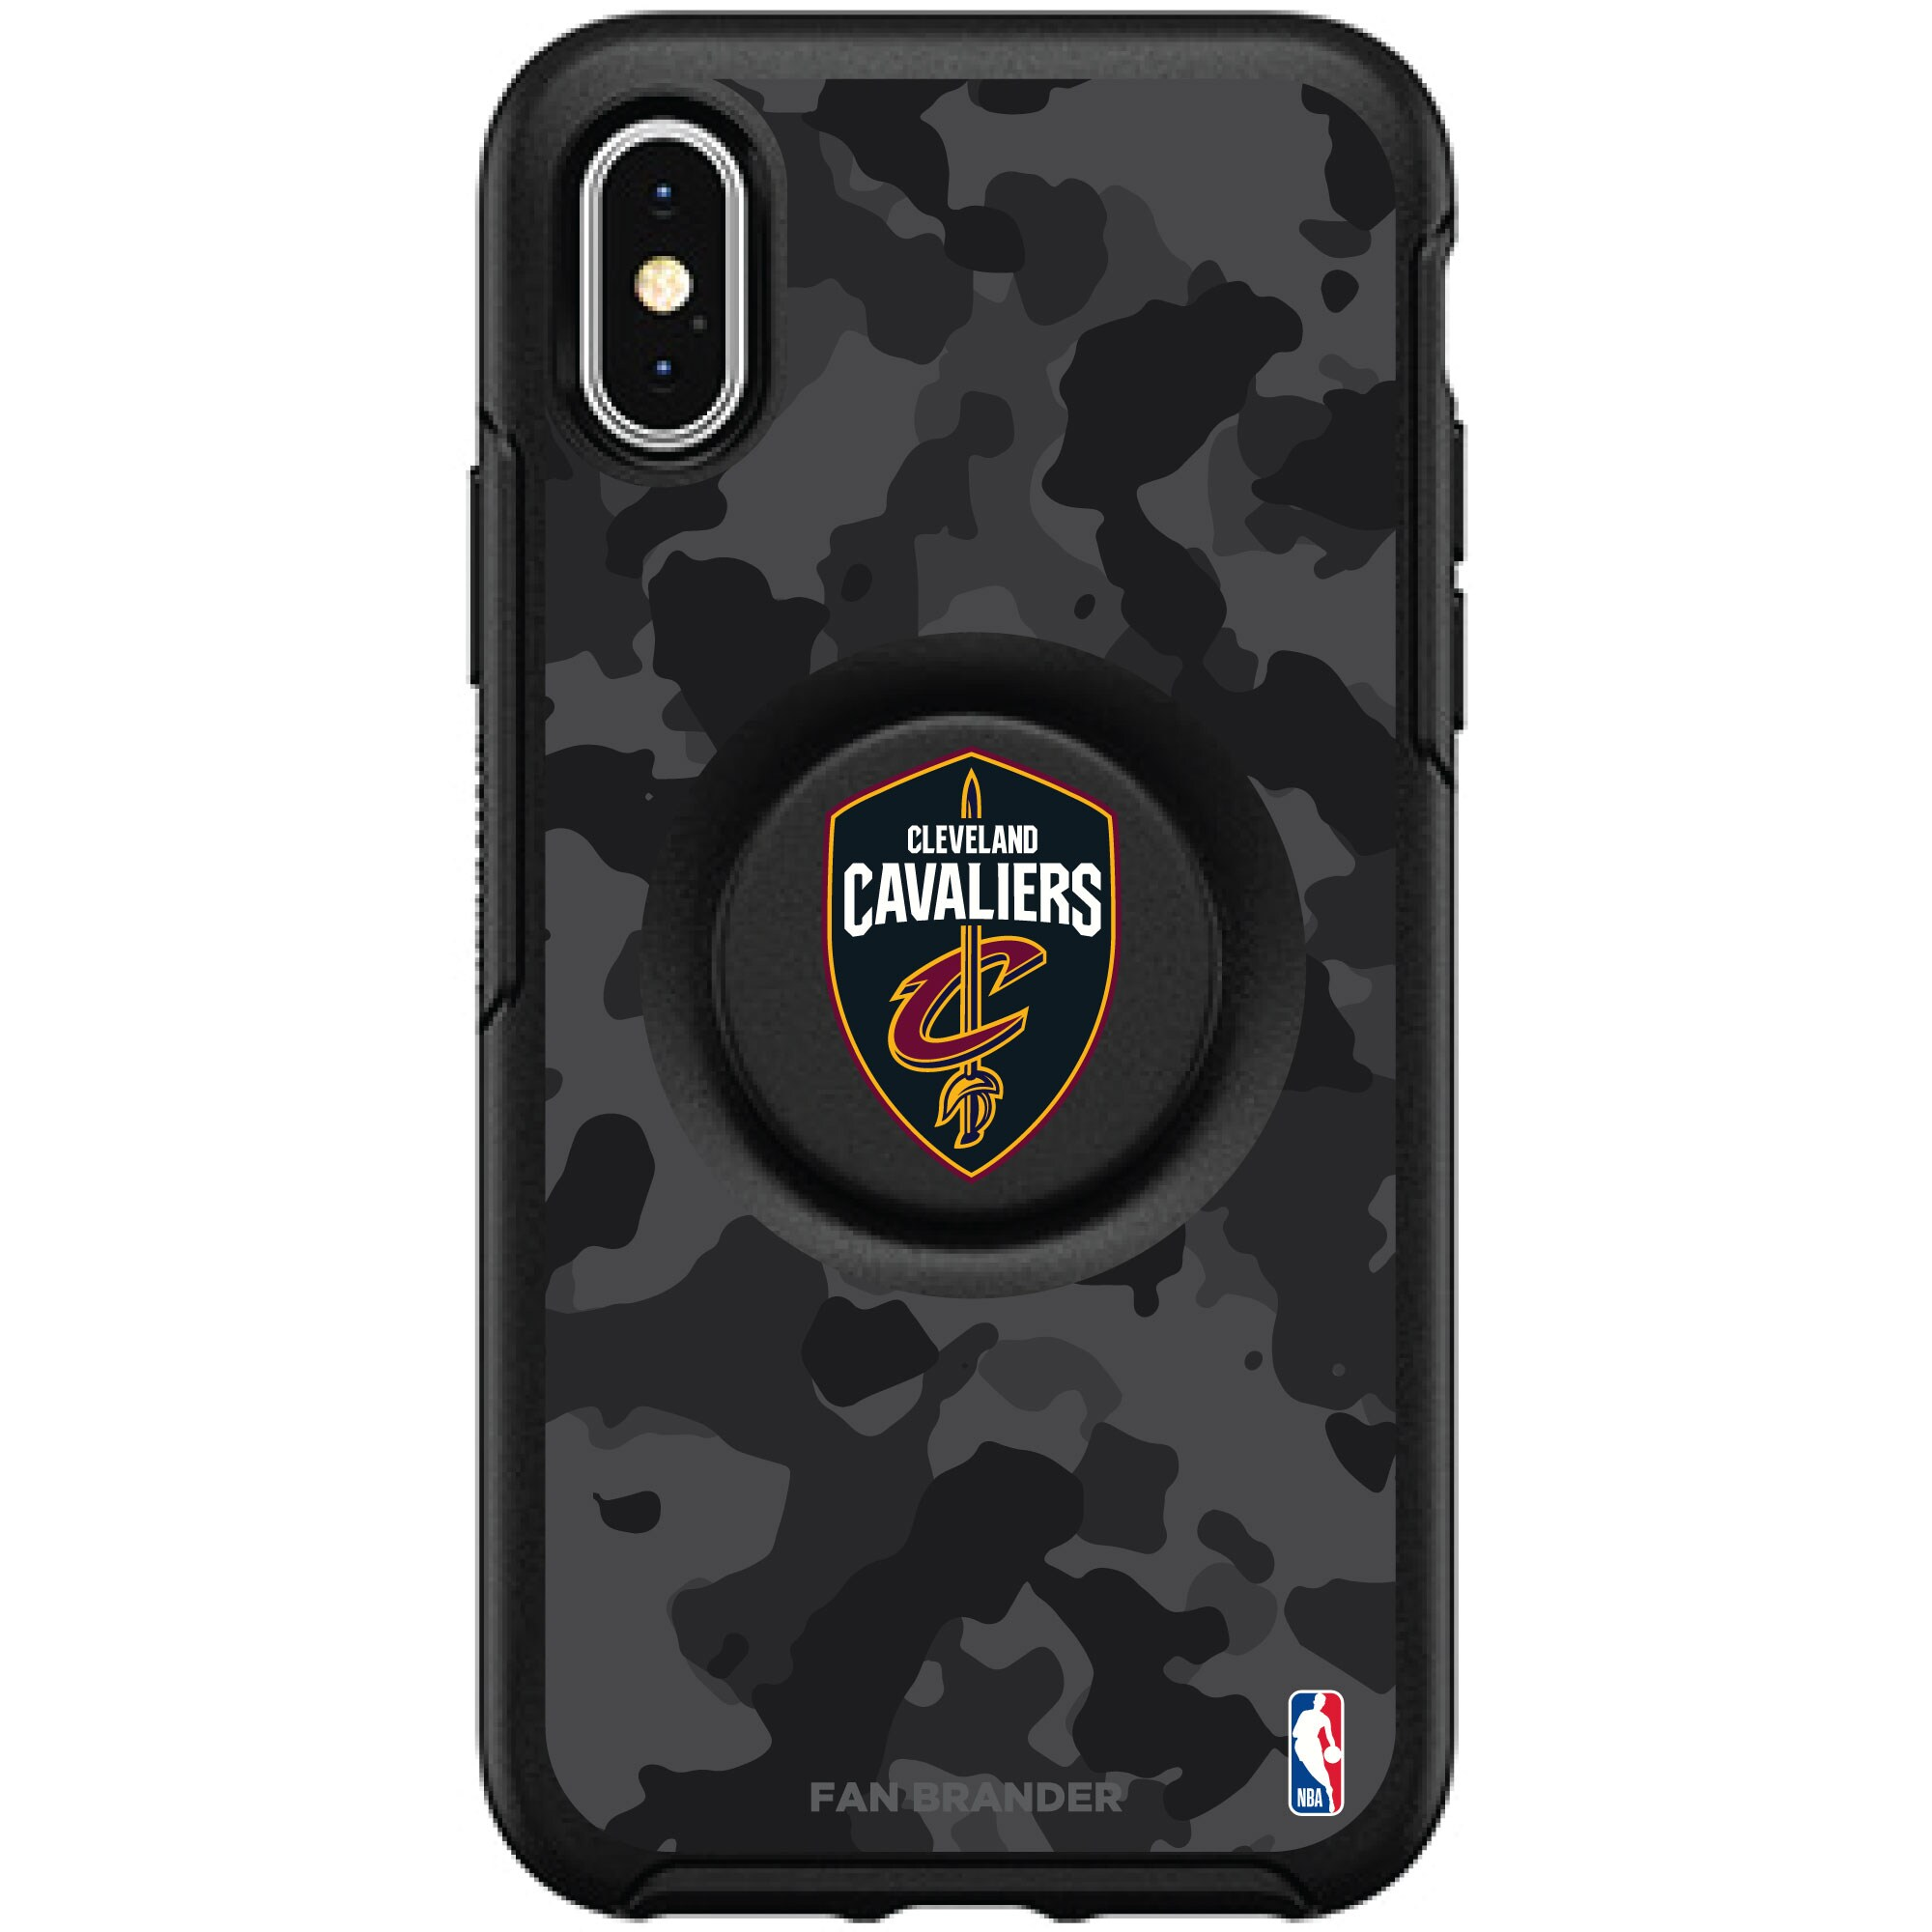 Cleveland Cavaliers OtterBox Otter + PopSocket Symmetry Urban Camo iPhone Case